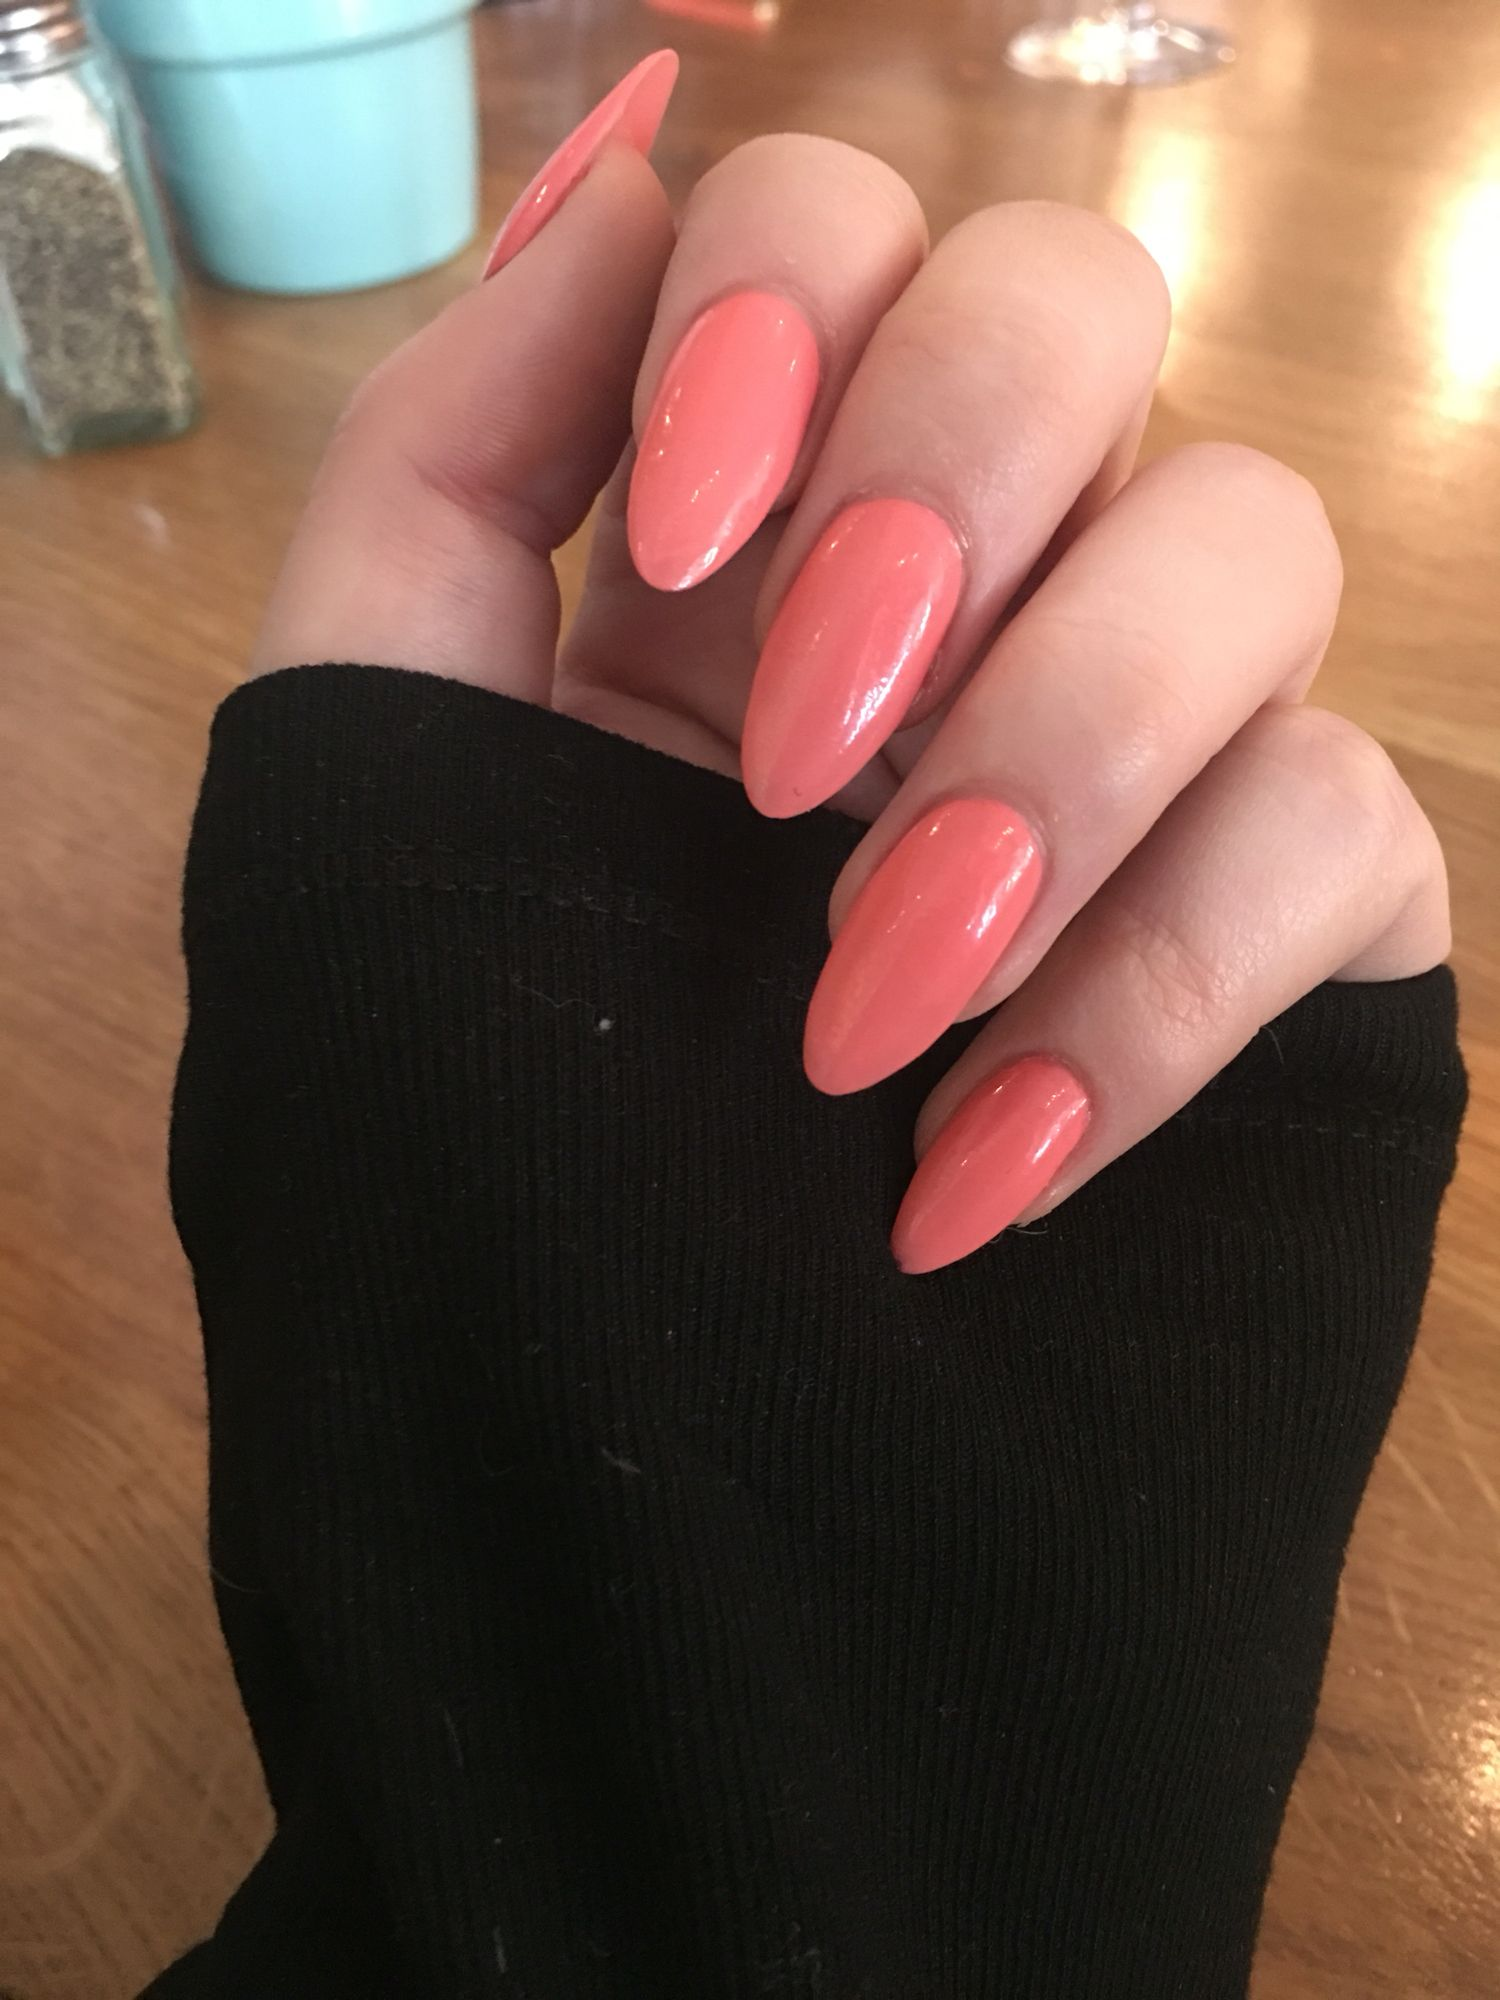 Coral colour almond shape nails - In love with these #nails ...